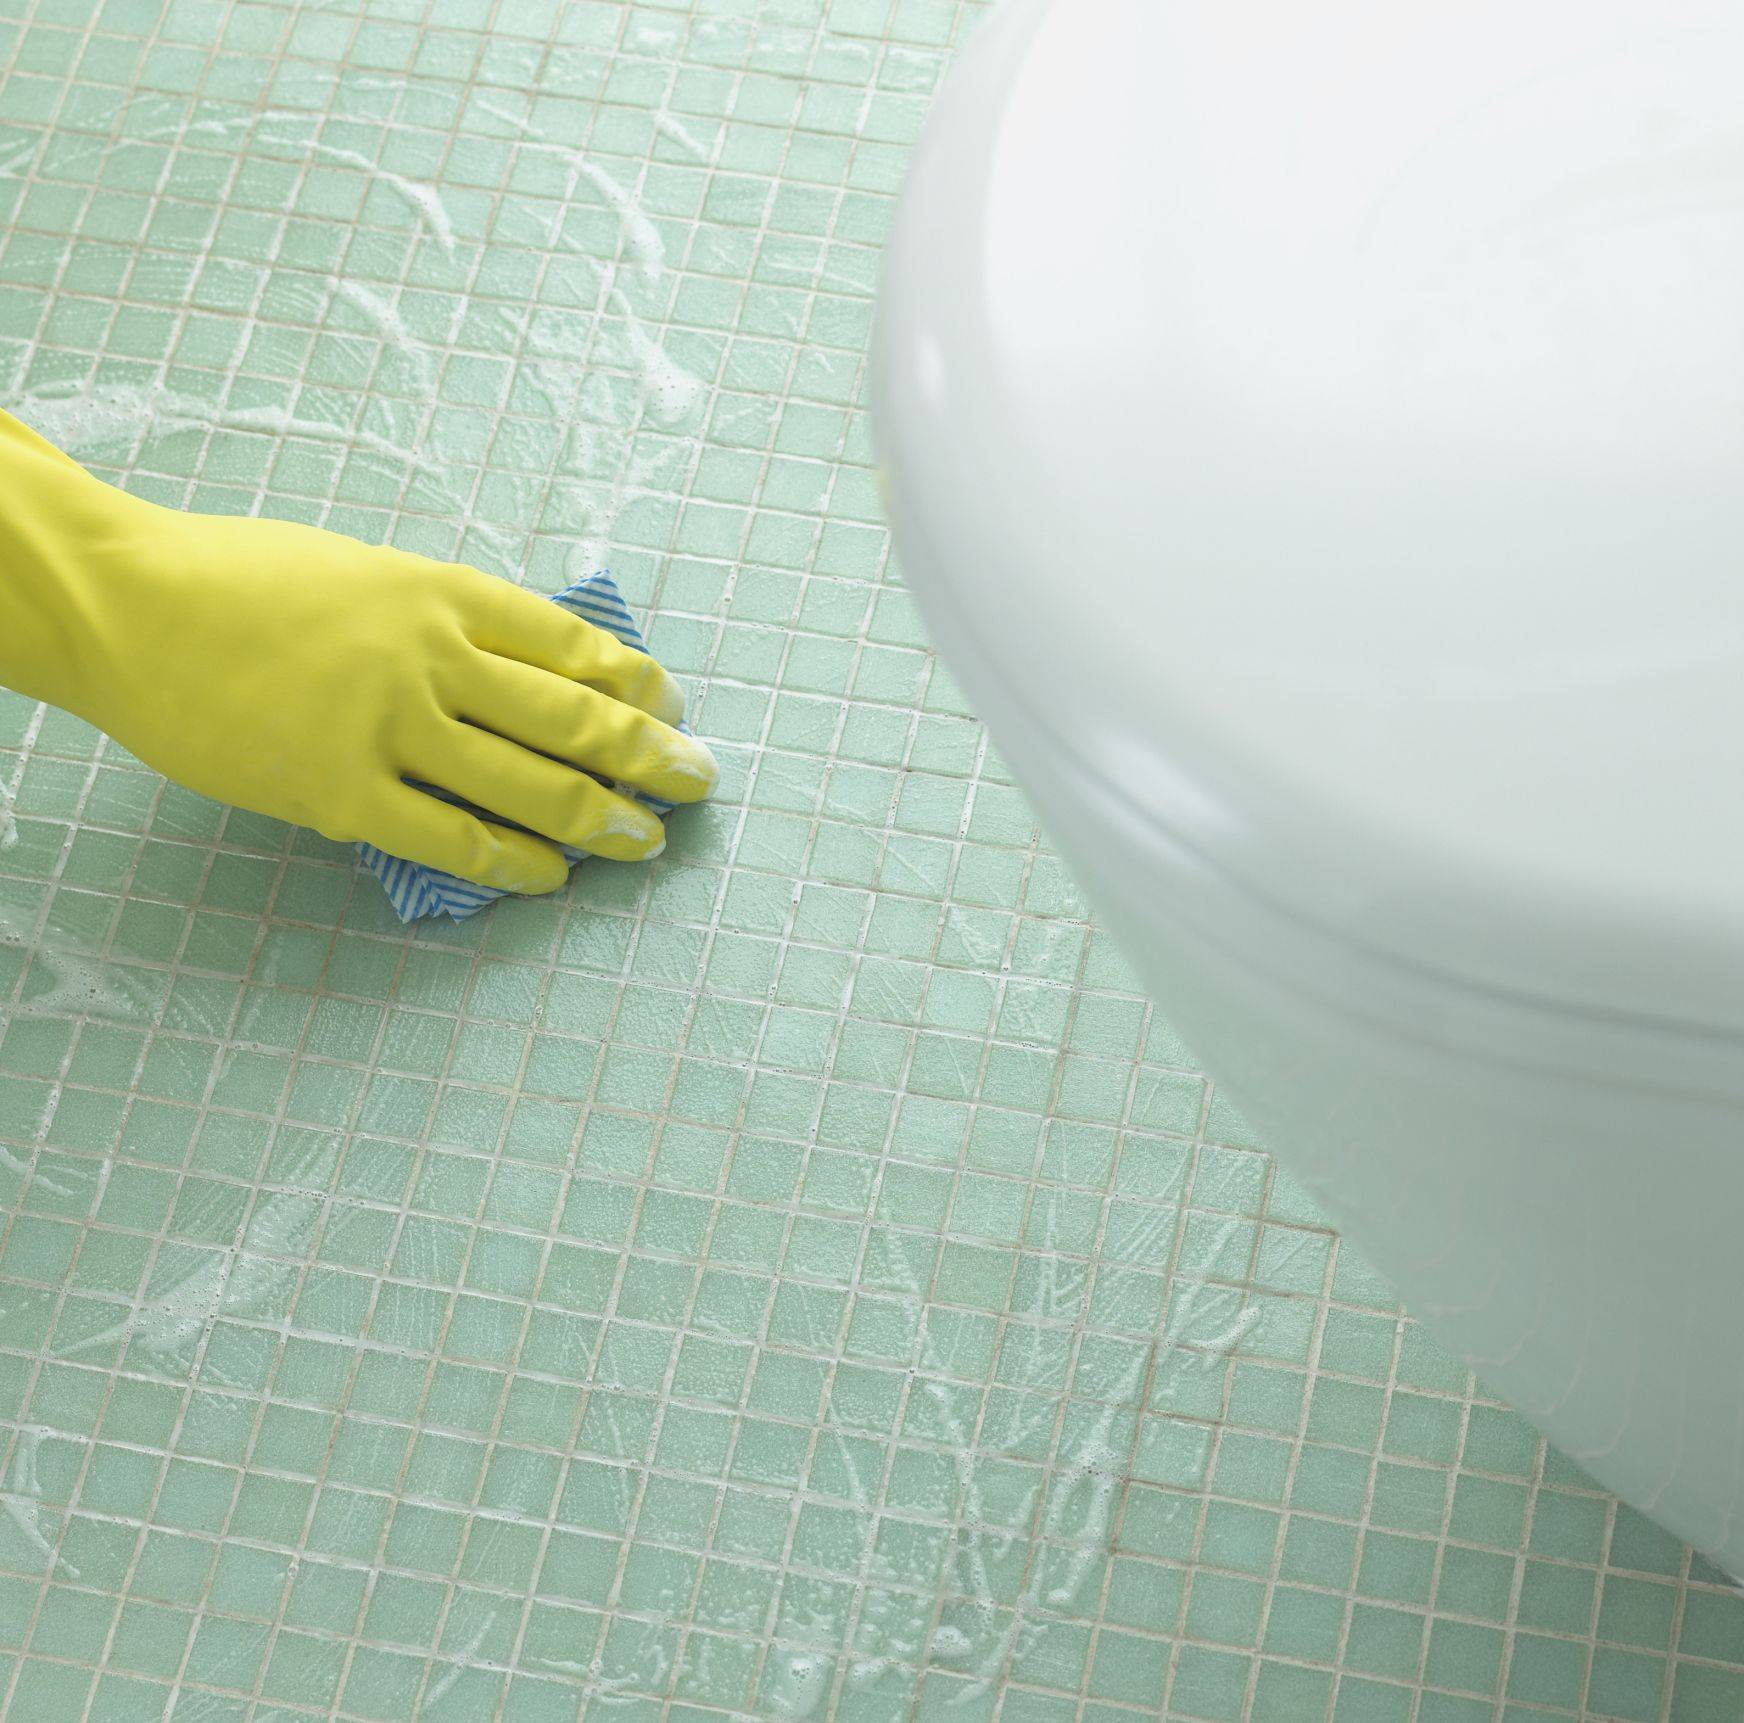 Cleaning Grout Haze dv 56a4a0703df78cf f7